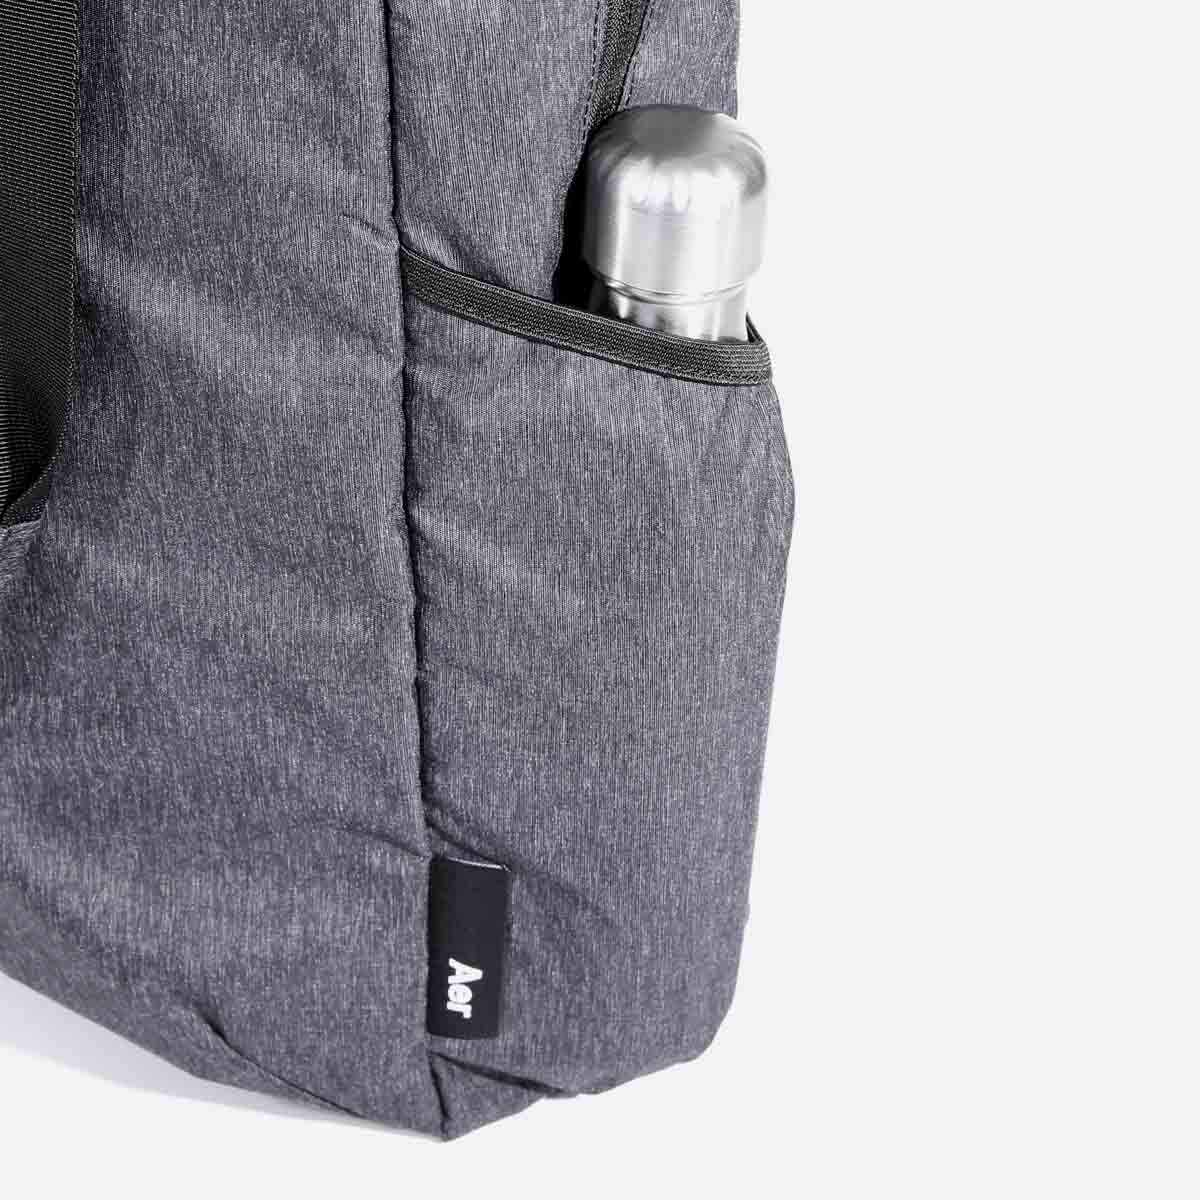 Side pockets for water bottle or small items.